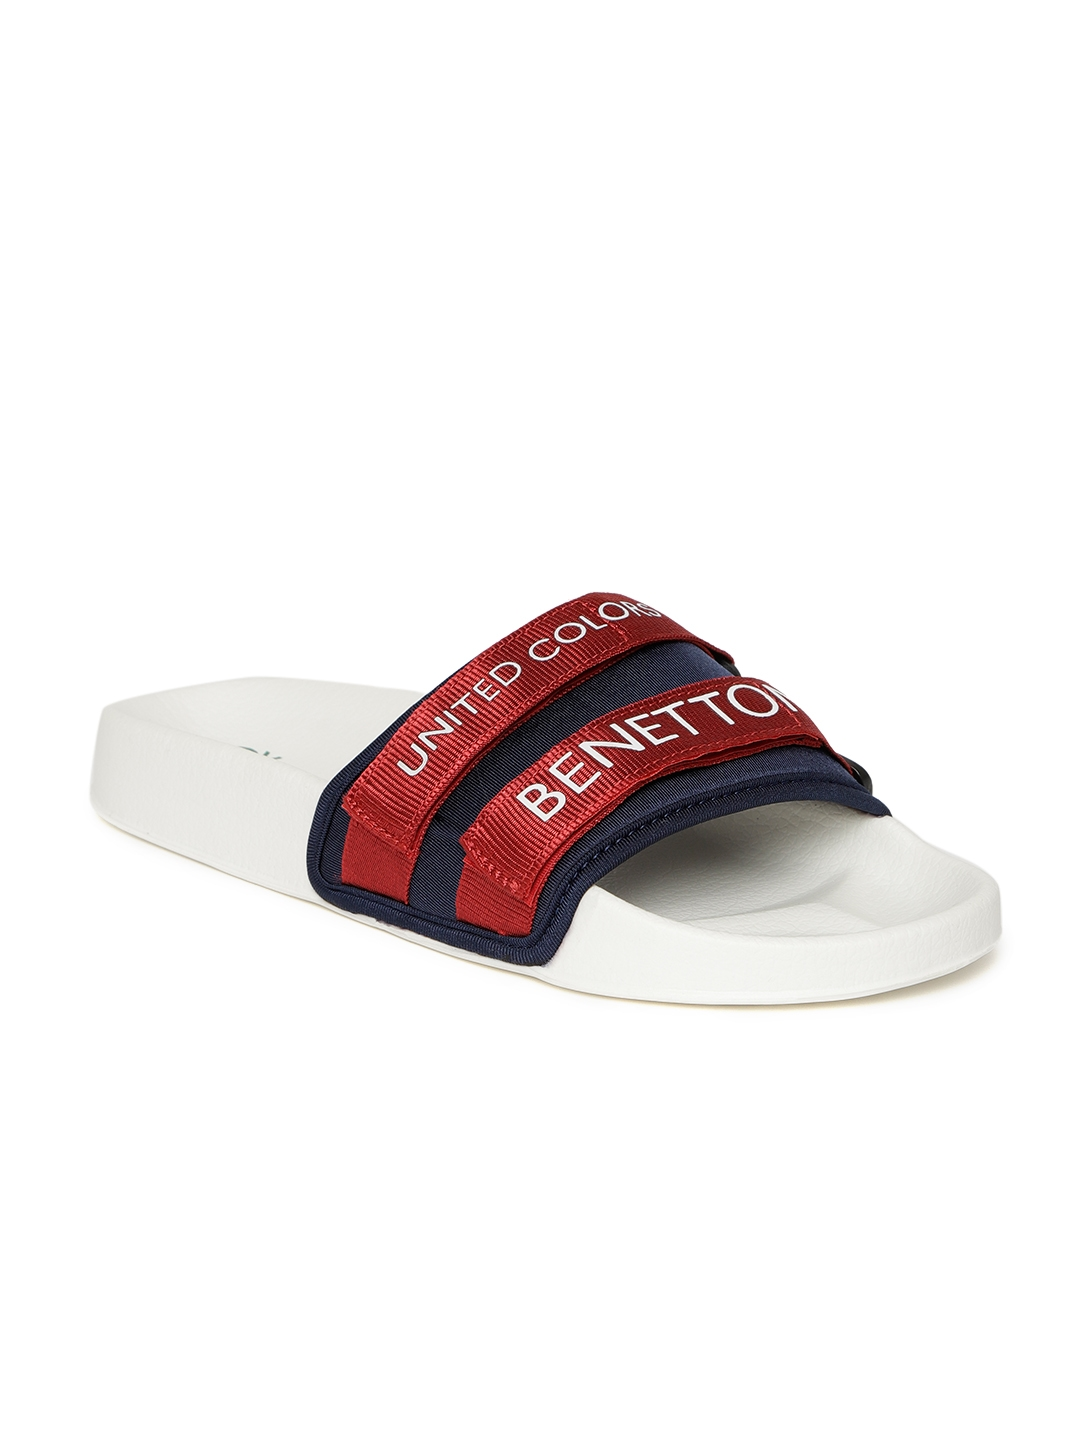 4a4810190de4 Buy United Colors Of Benetton Men Red   Navy Blue Printed Sliders ...